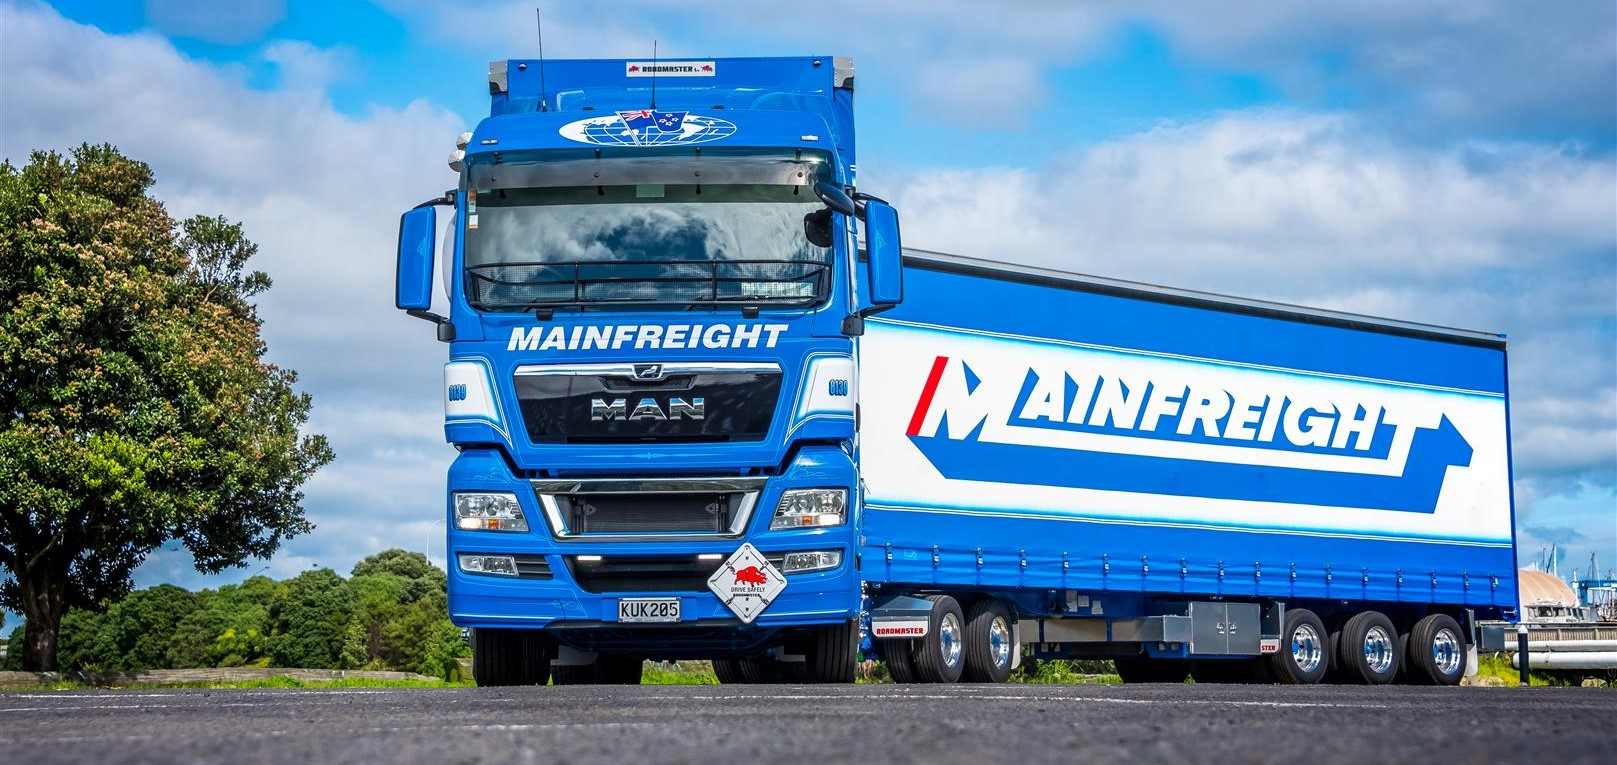 Mainfreight-video-still-wide.jpg